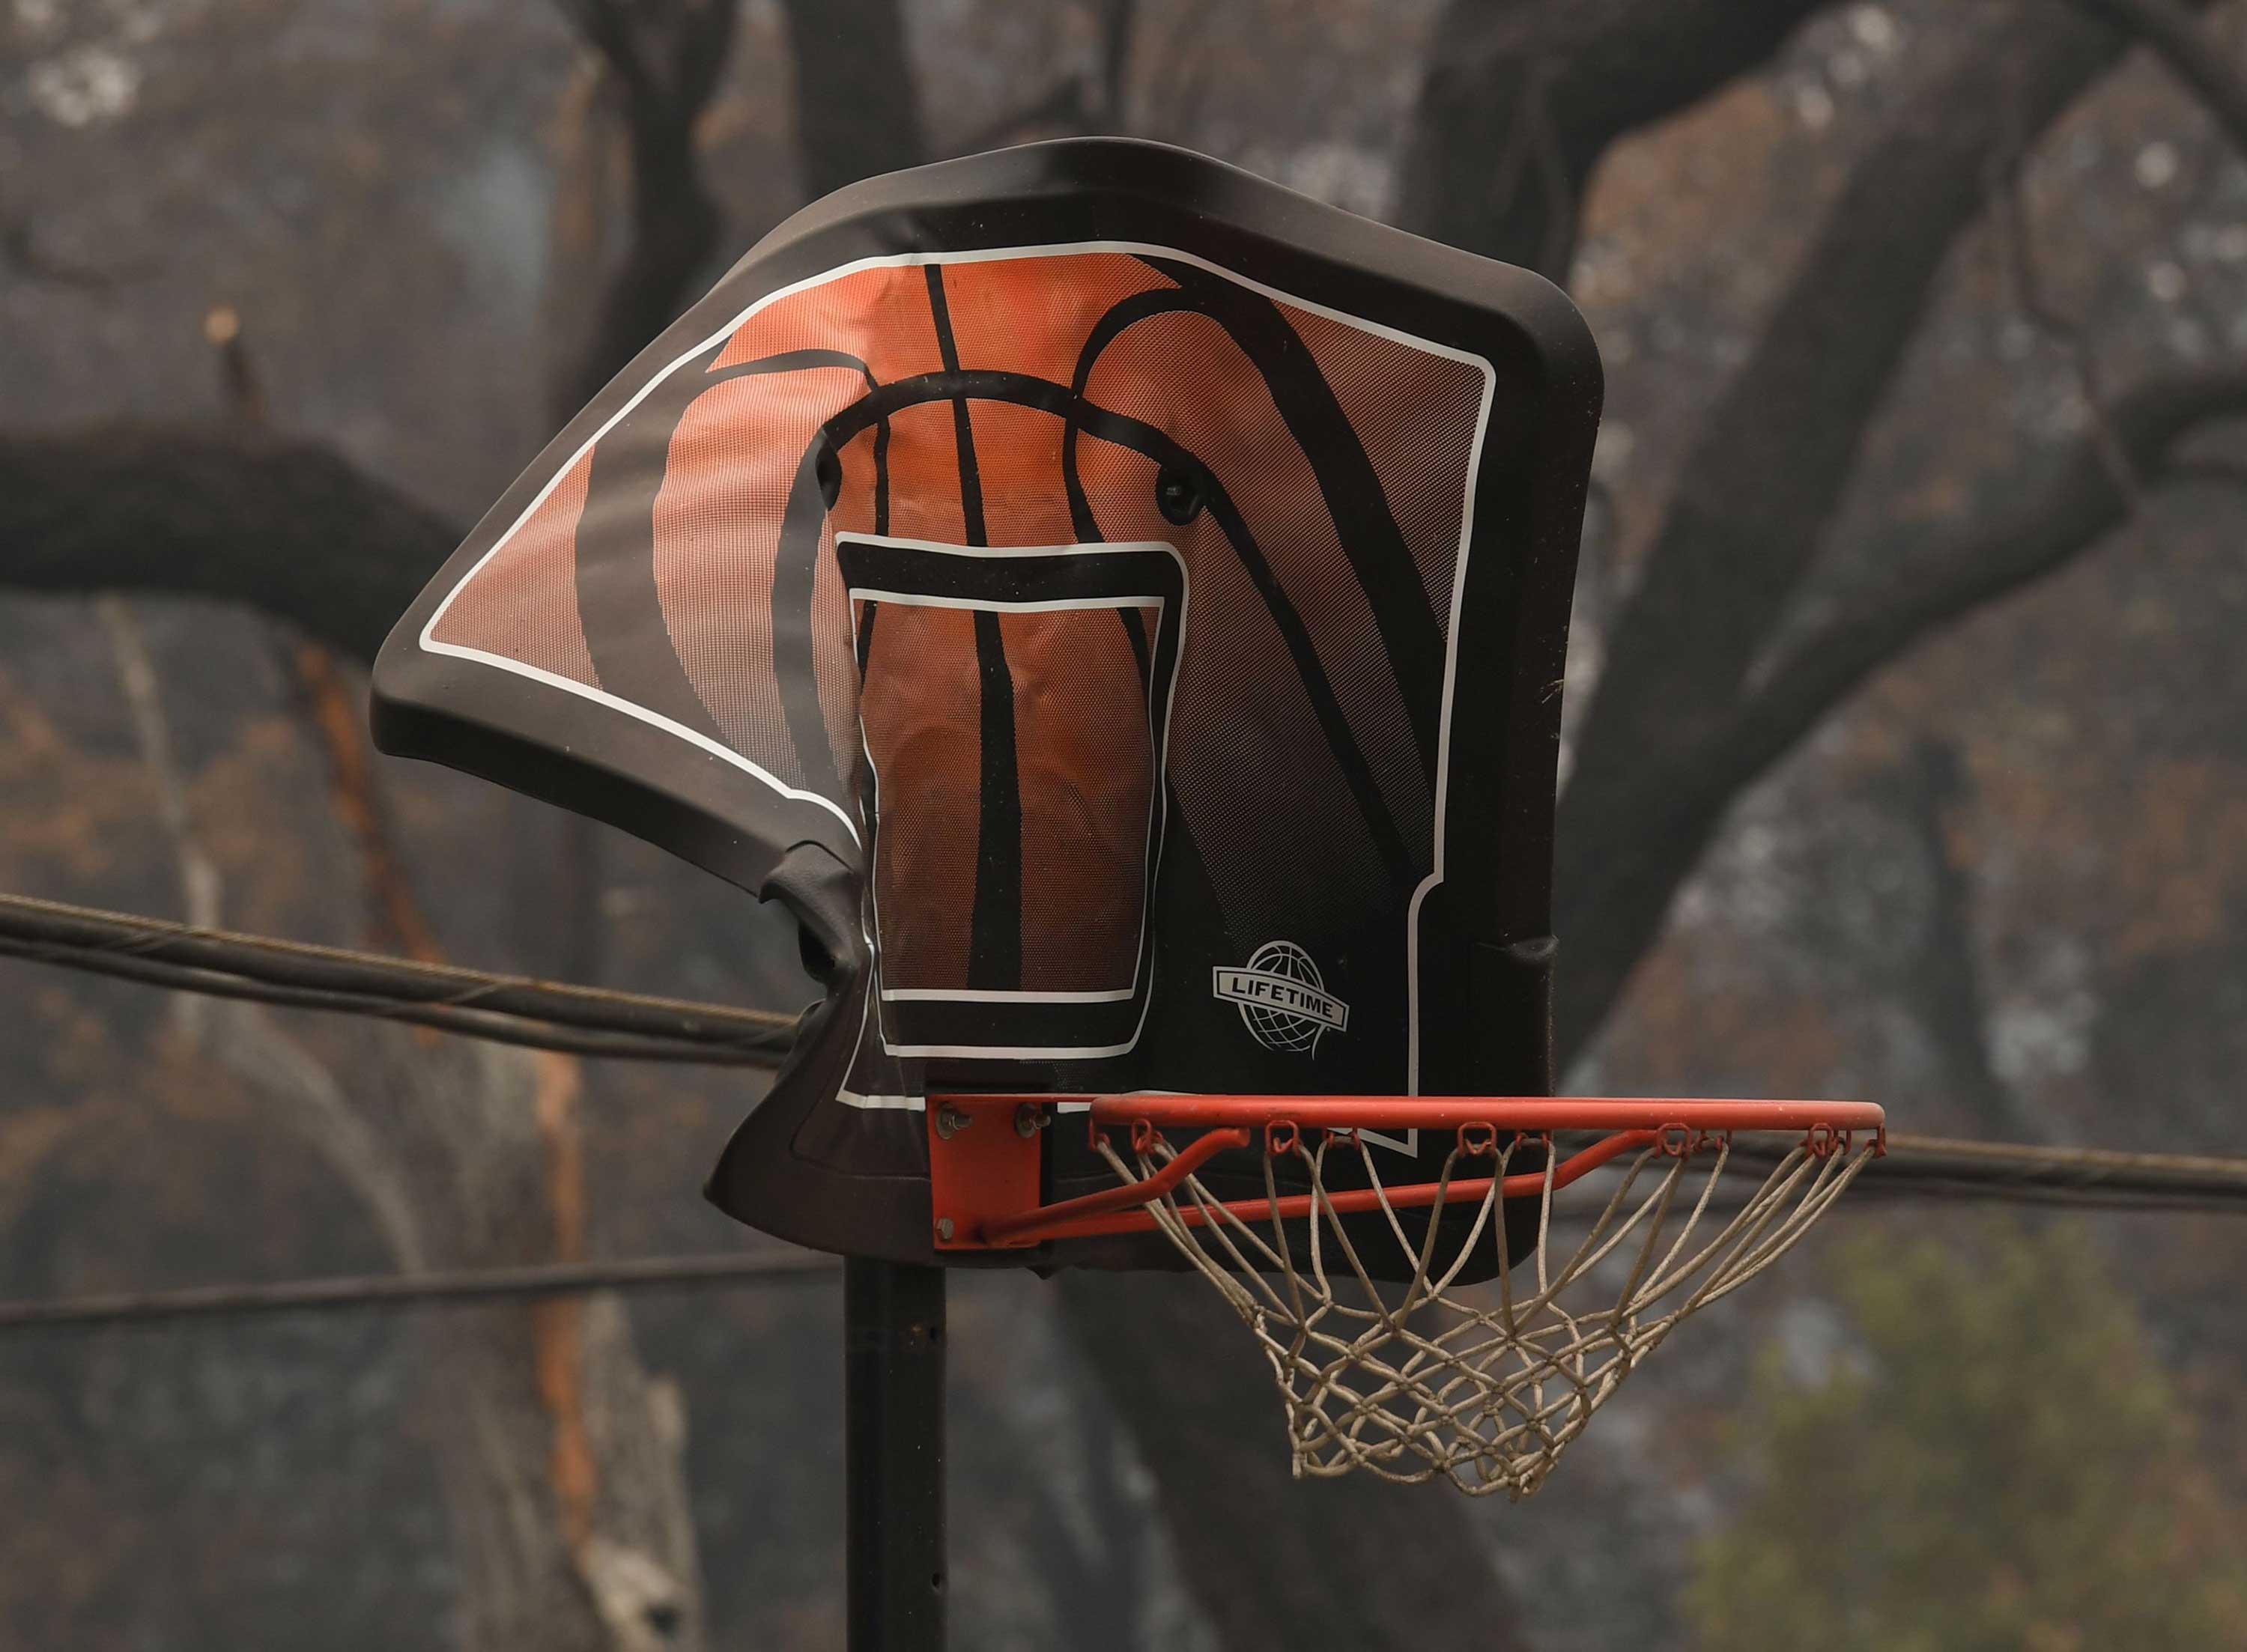 <div class='meta'><div class='origin-logo' data-origin='none'></div><span class='caption-text' data-credit='MARK RALSTON/AFP/Getty Images'>A fire damaged basketball hoop in the Keswick neighborhood of Redding, as the Carr fire continues to spreads towards the town of Douglas City near Redding, California on July 31.</span></div>